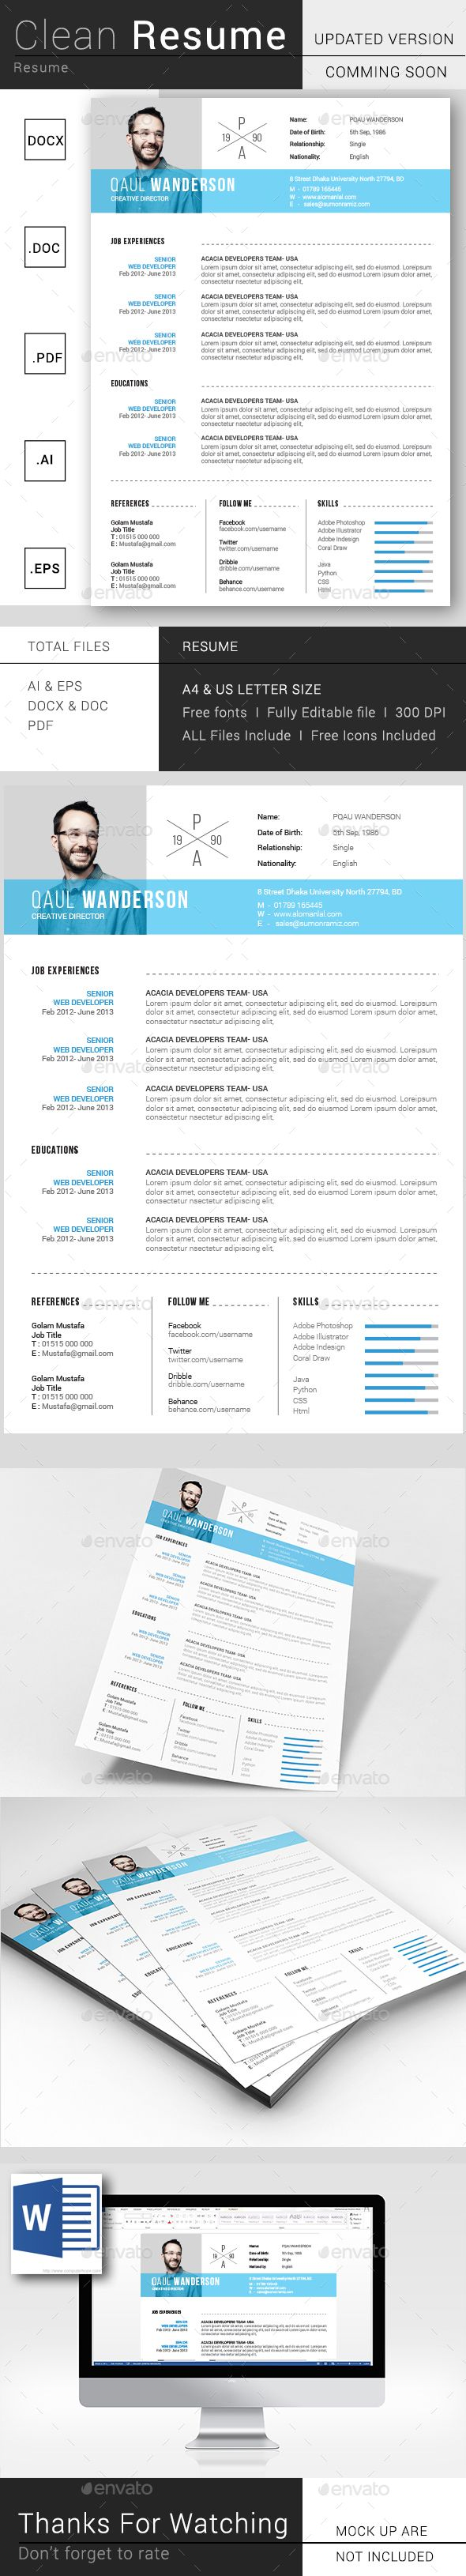 simple resume    cv template vector eps  ai illustrator  ms word